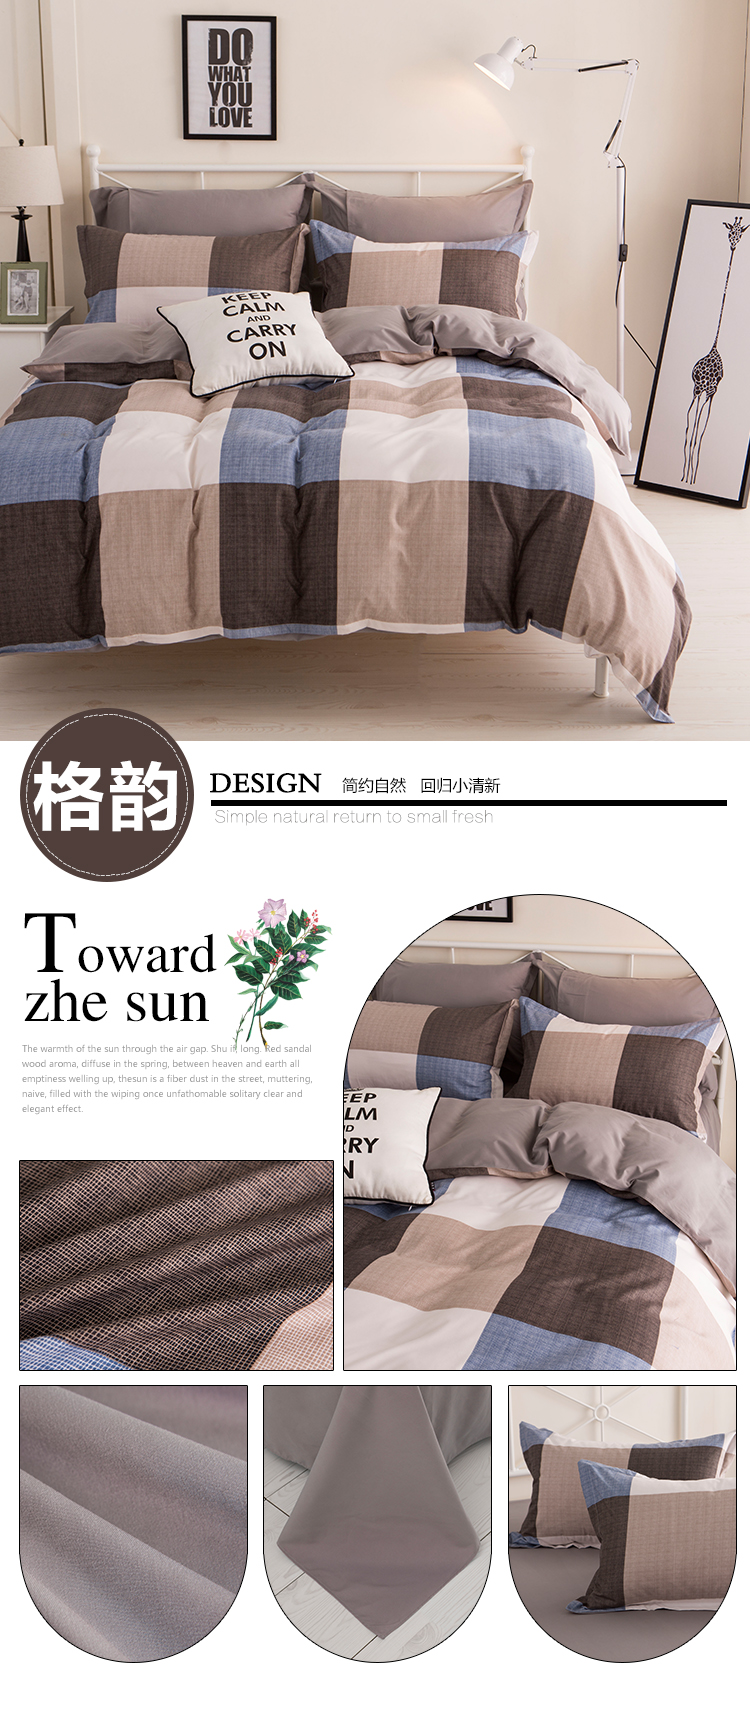 Wholesale Cara Carle Bedding Set Bedclothes Duvet Cover Bed Sheet Bedcover Silk Star Oringina 200x200 I Can Give You A Price And Logistics Solutions